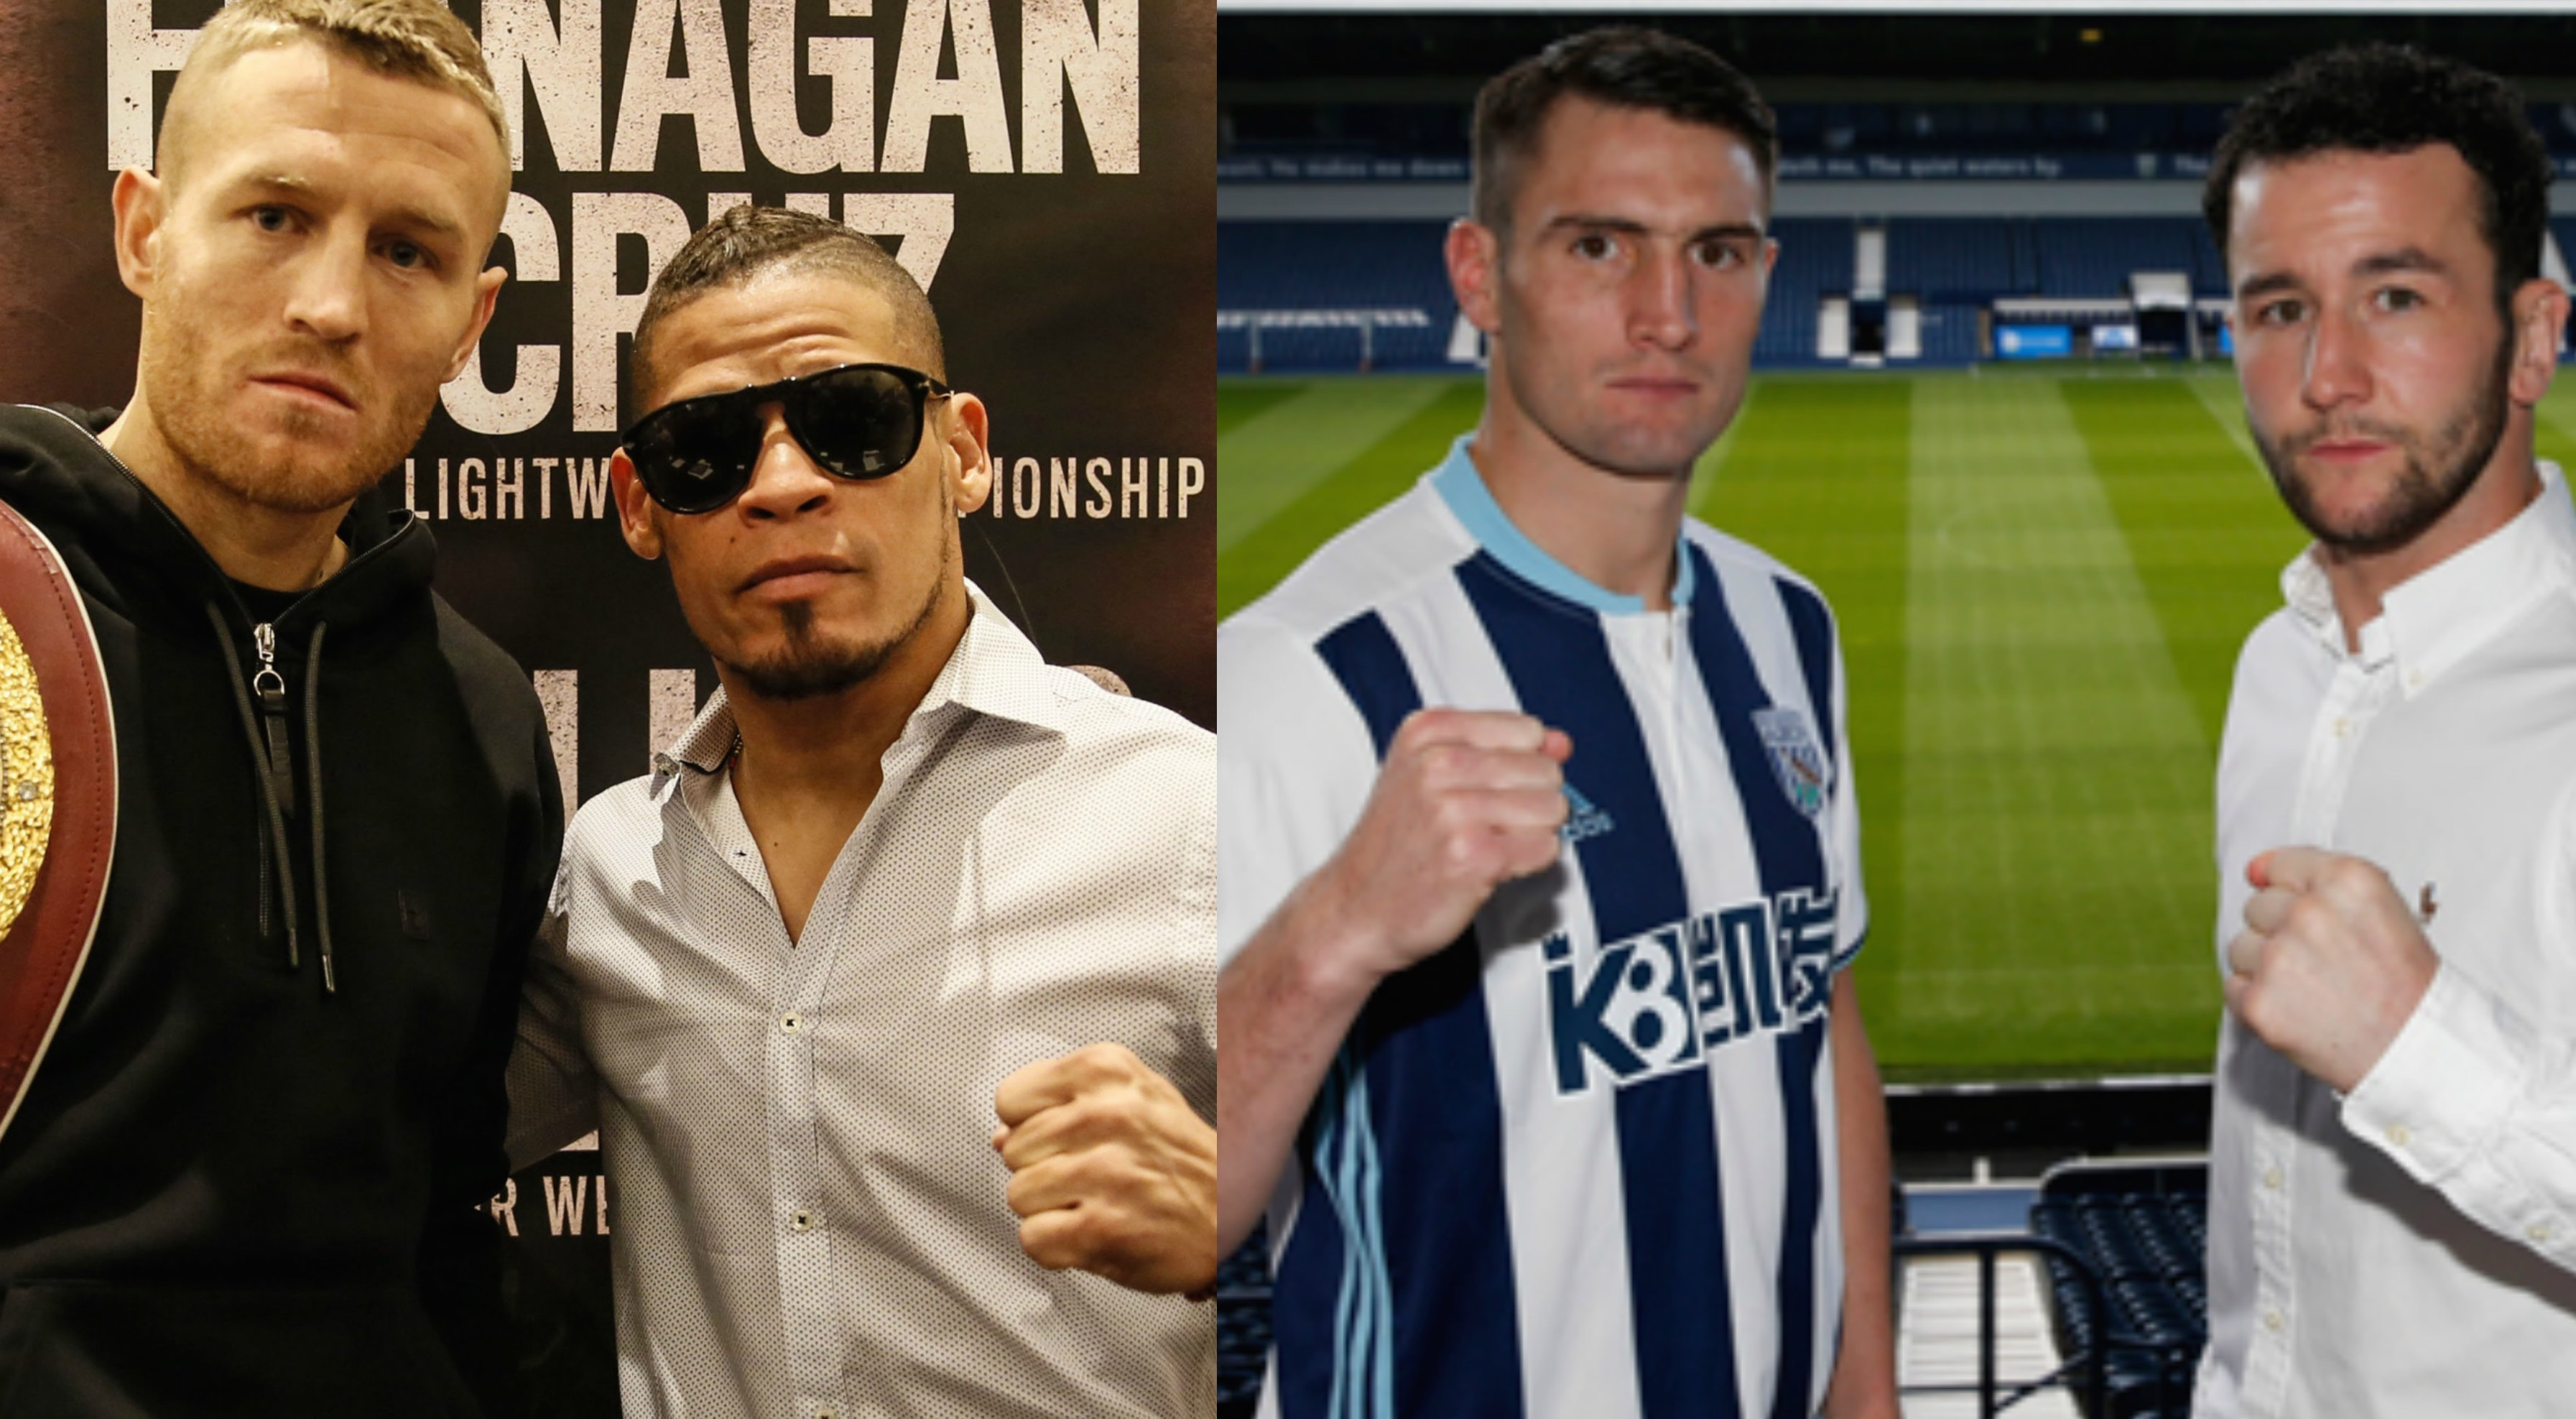 Terry Flanagan Orlando Cruz Tommy Langford Sam Sheedy